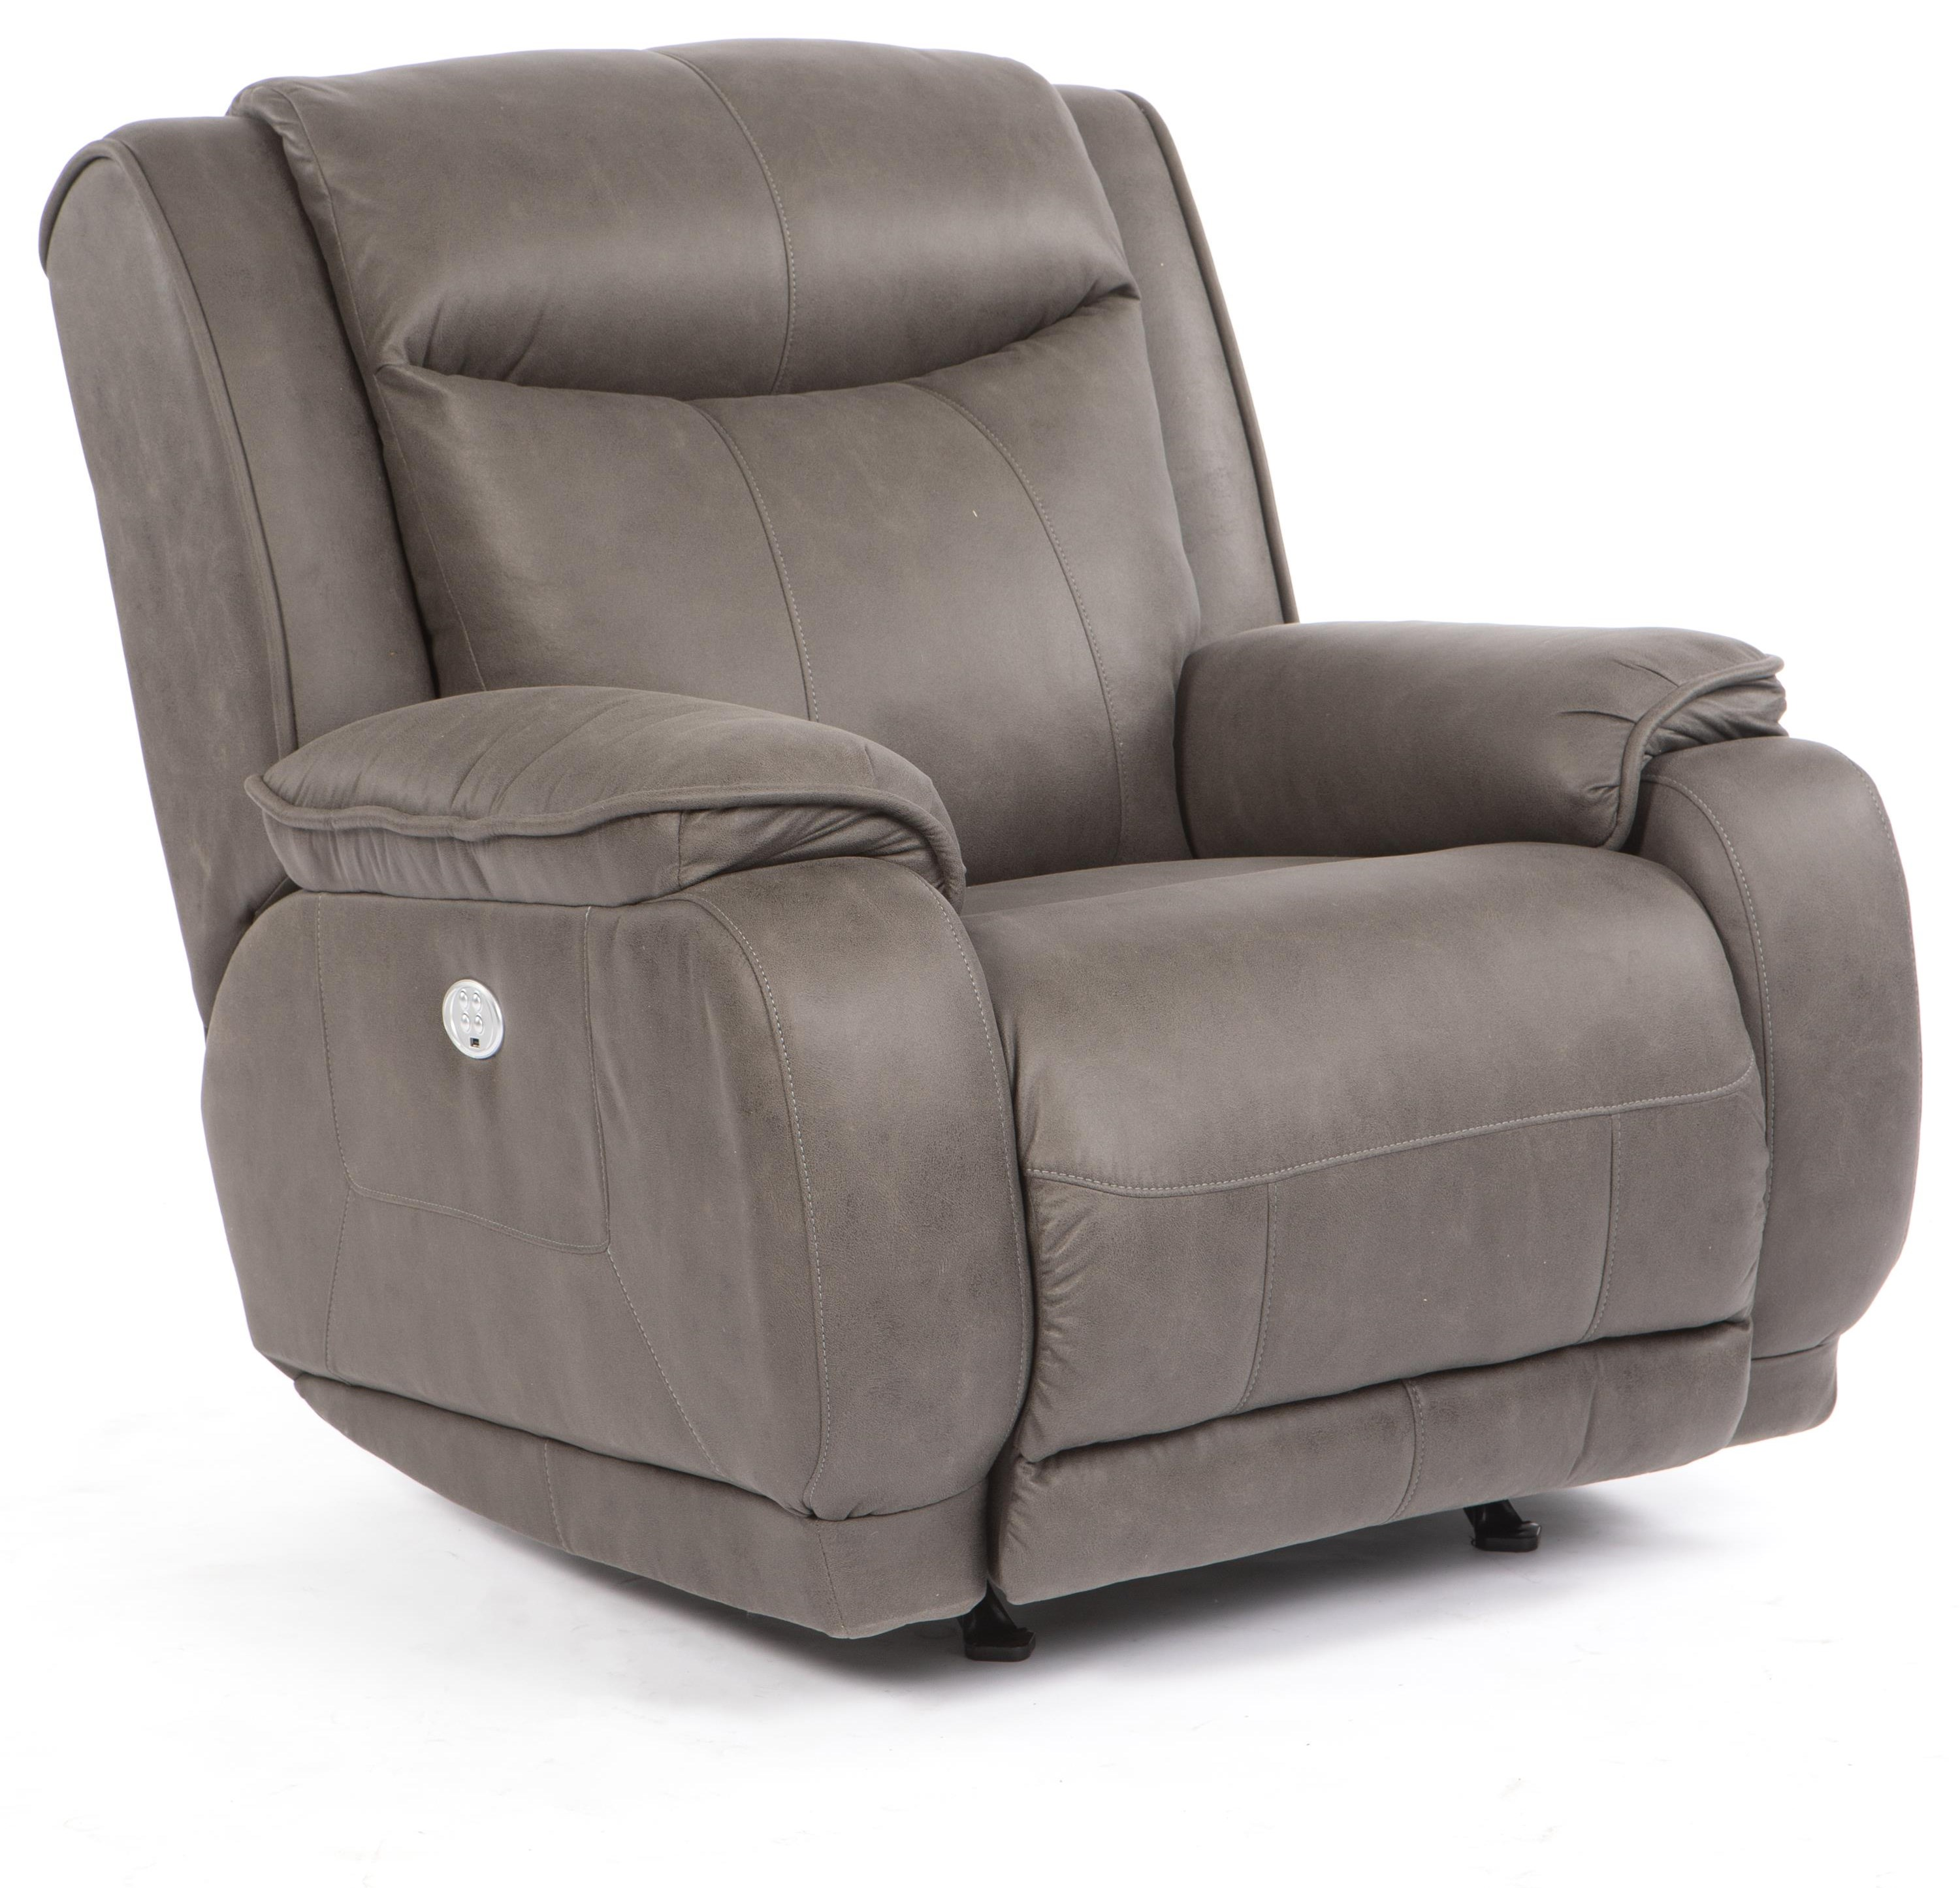 Velocity Power Headrest Rocking Recliner by Southern Motion at Crowley Furniture & Mattress